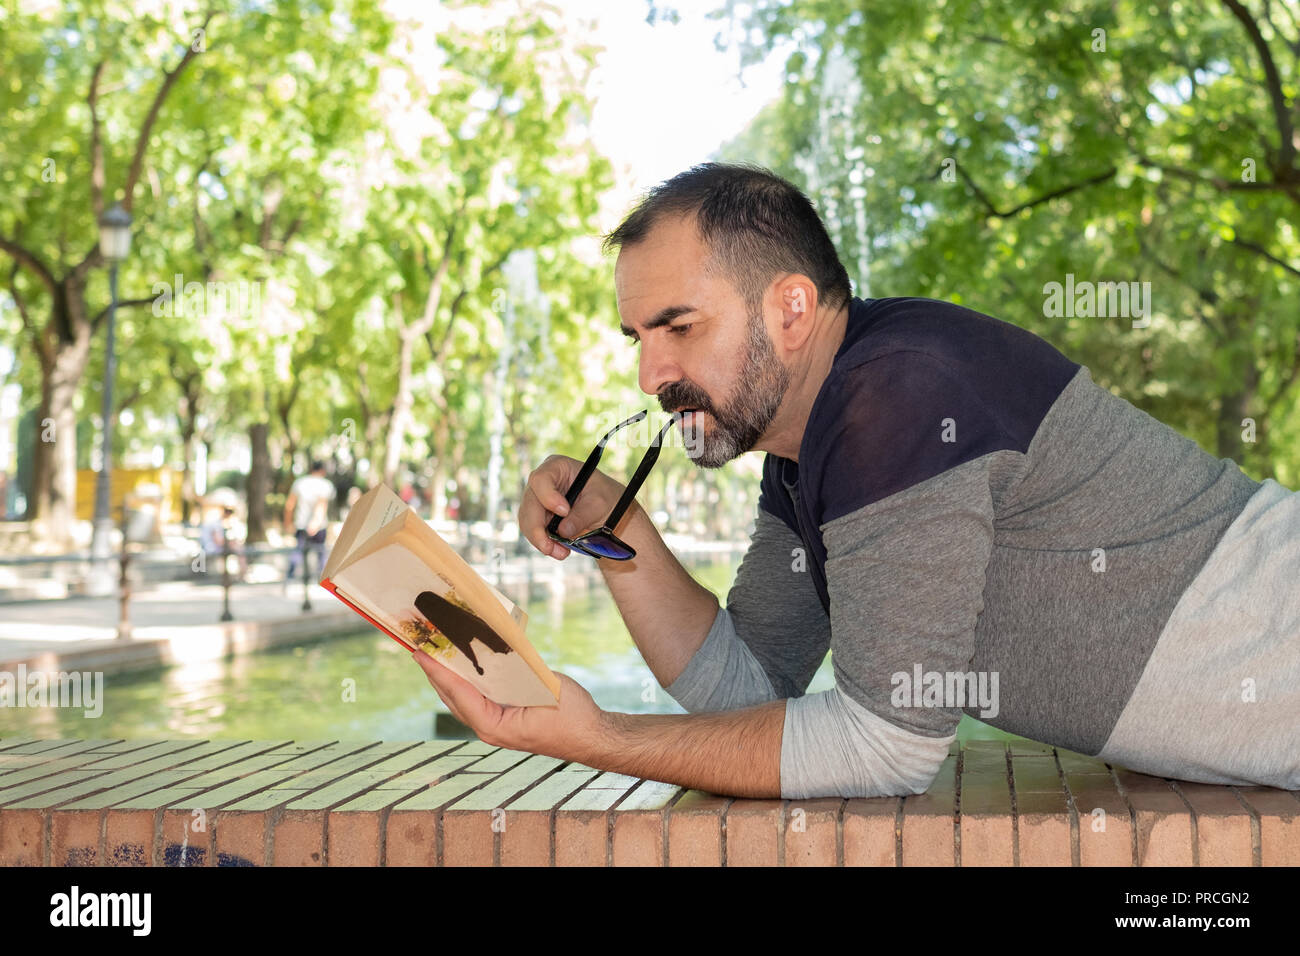 man lying in a park reading a book - Stock Image